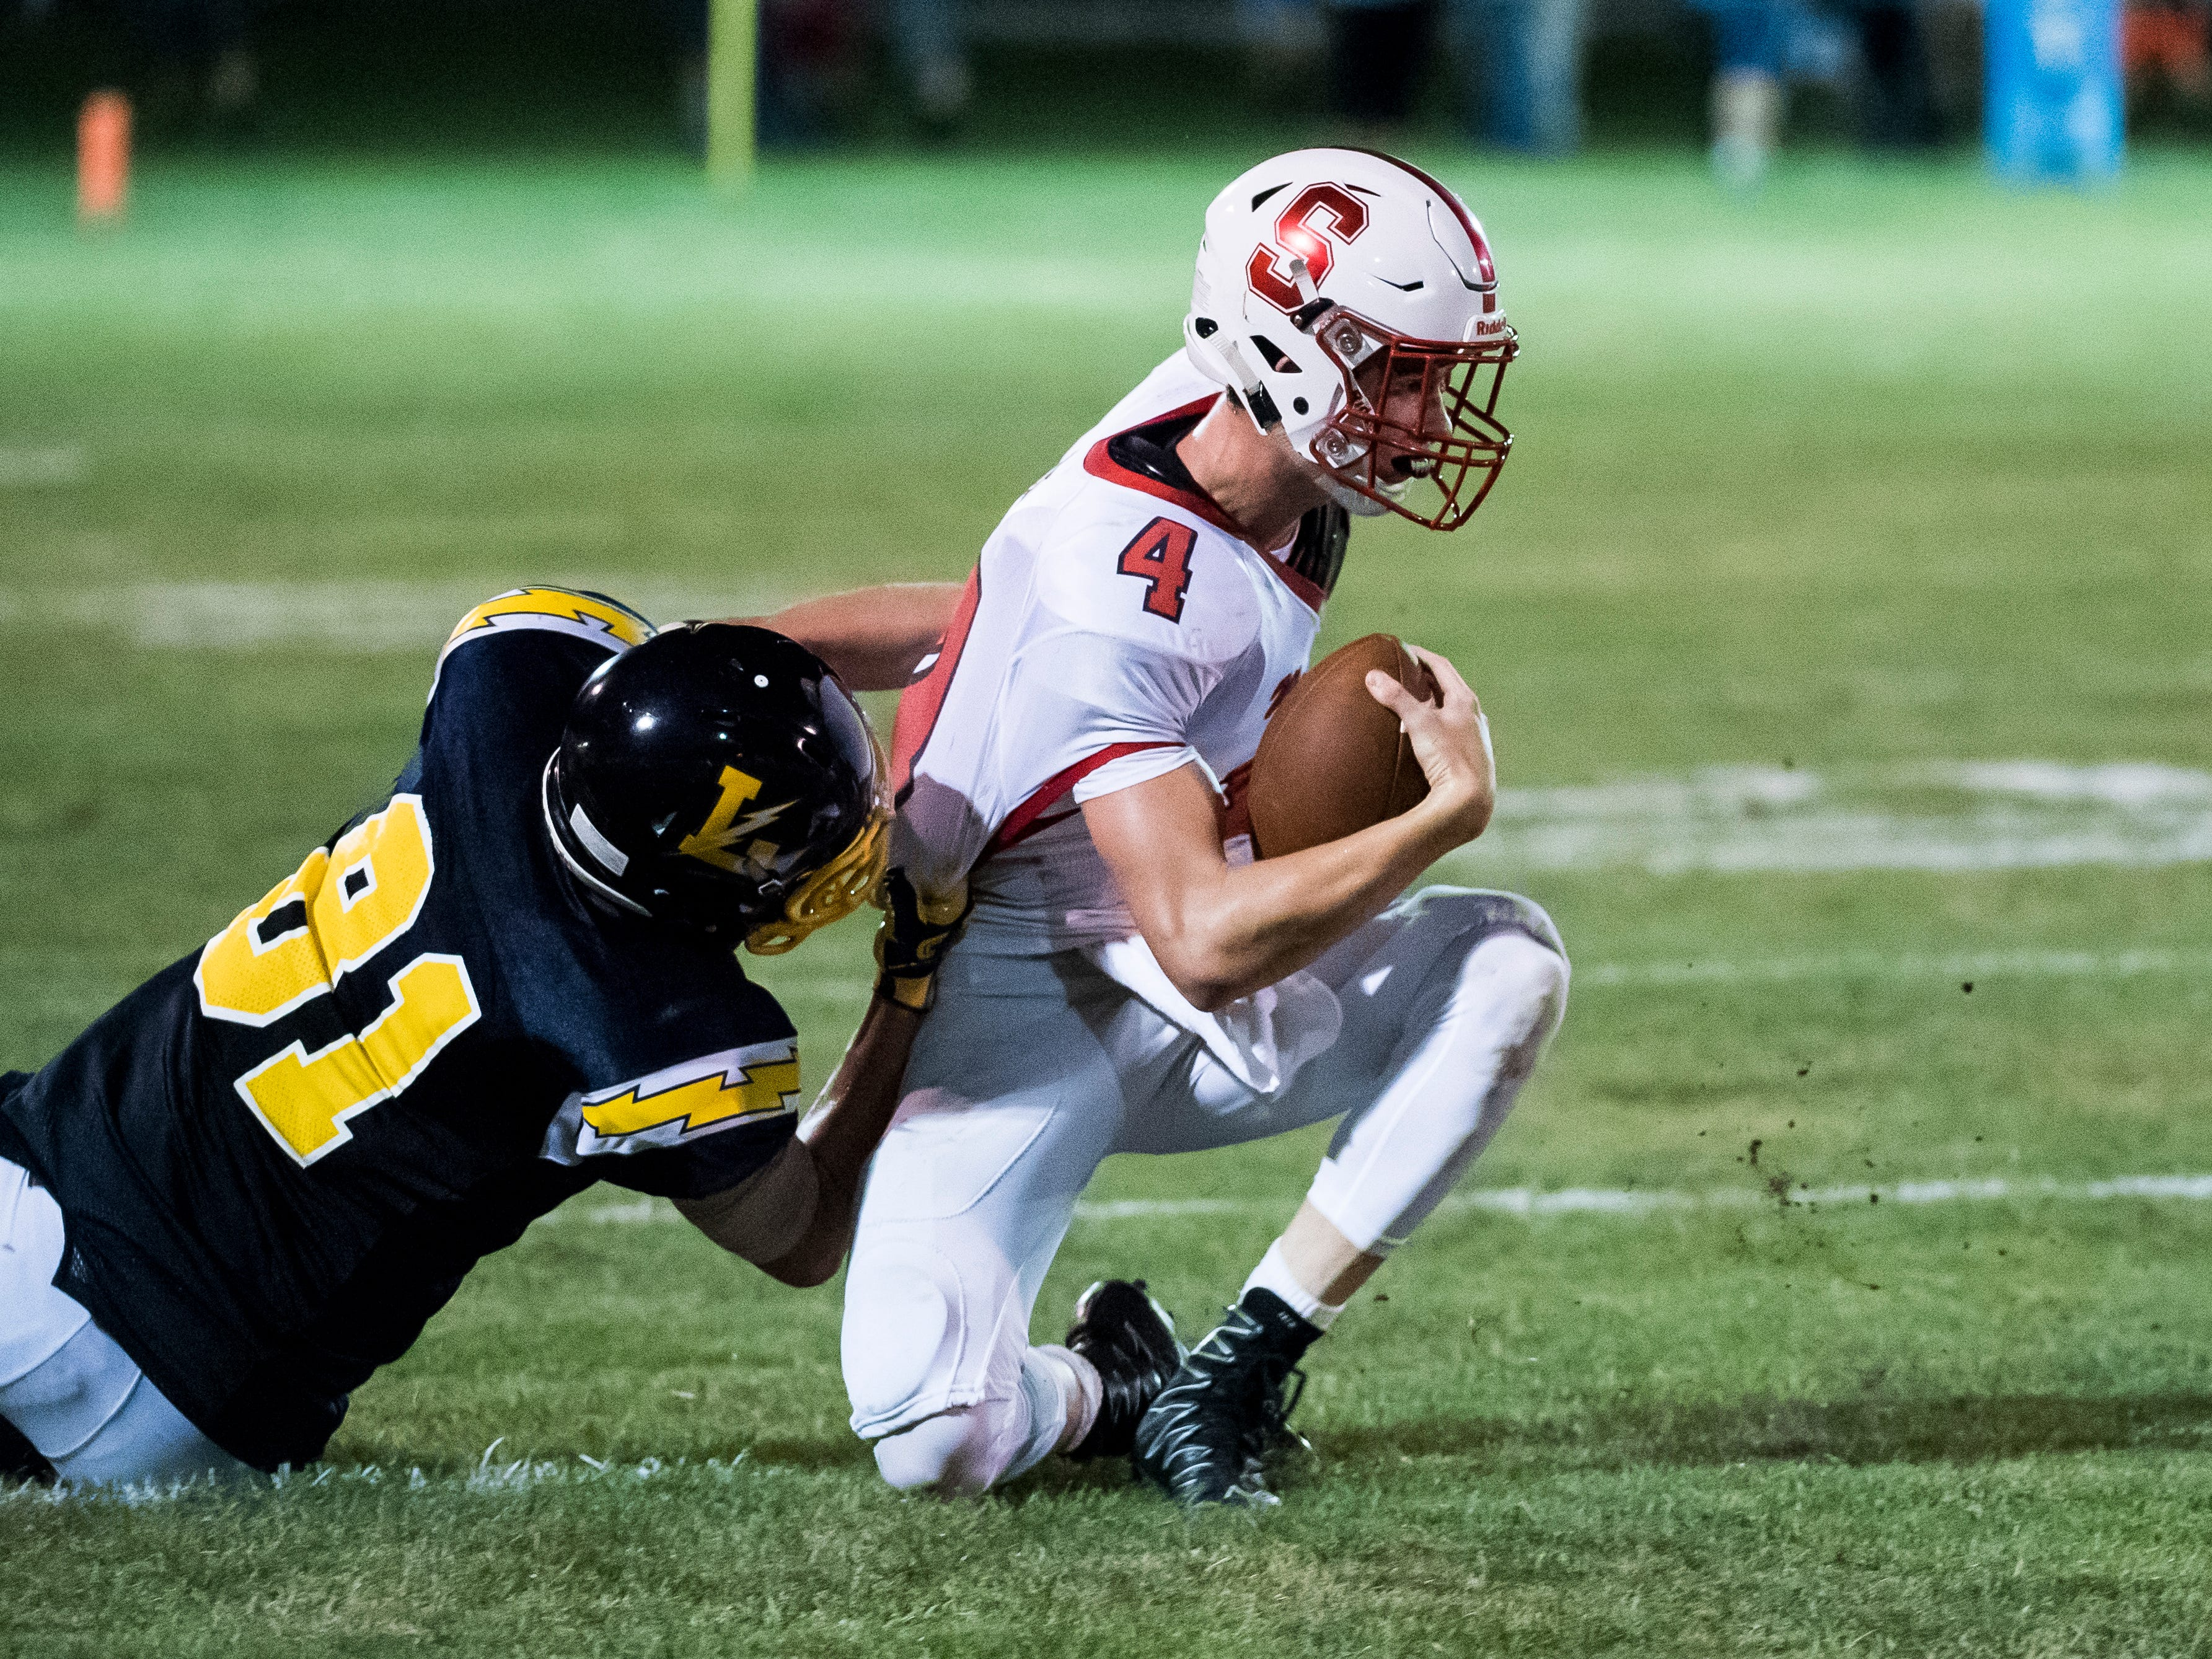 Susquehannock quarterback Kenny Rhyne is brought down by Brady McClintock on Friday, August 31, 2018. The Bolts beat the Warriors 29-14.